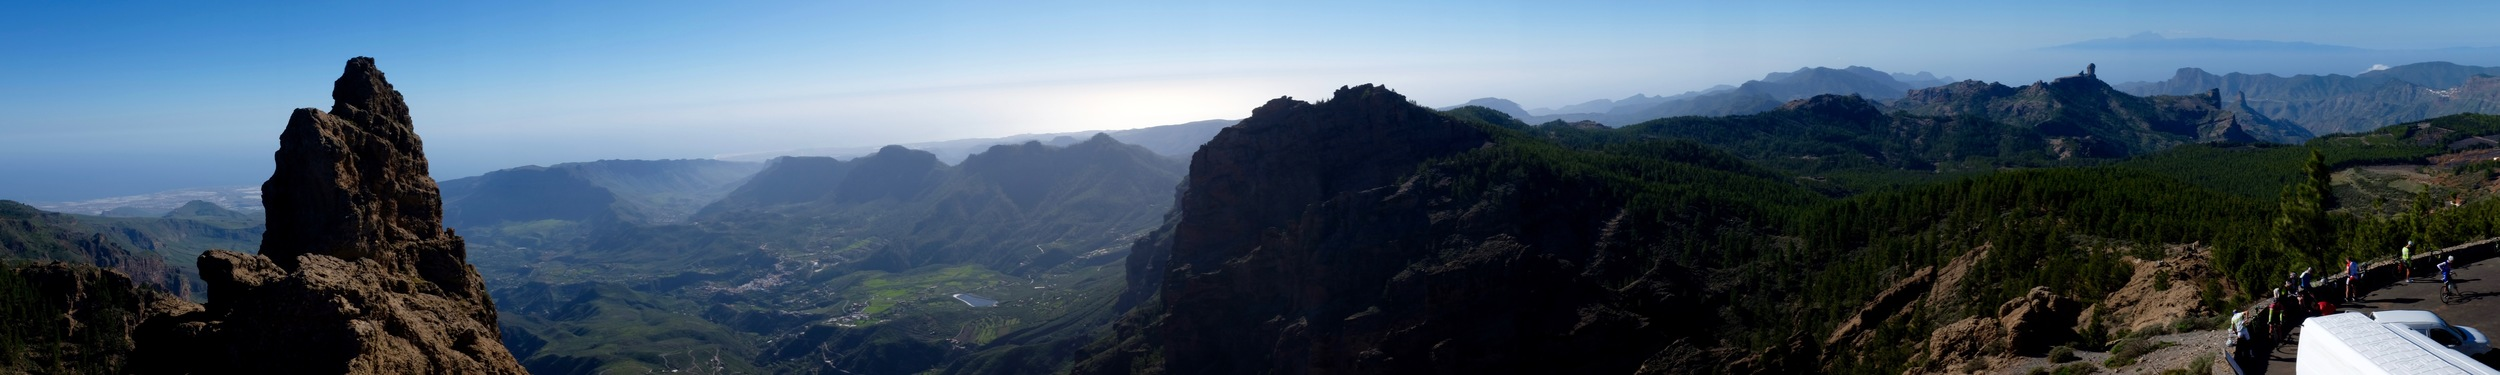 Panorama from the highest point of Gran Canaria. You can see Tenerife in the background in the upper right corner.